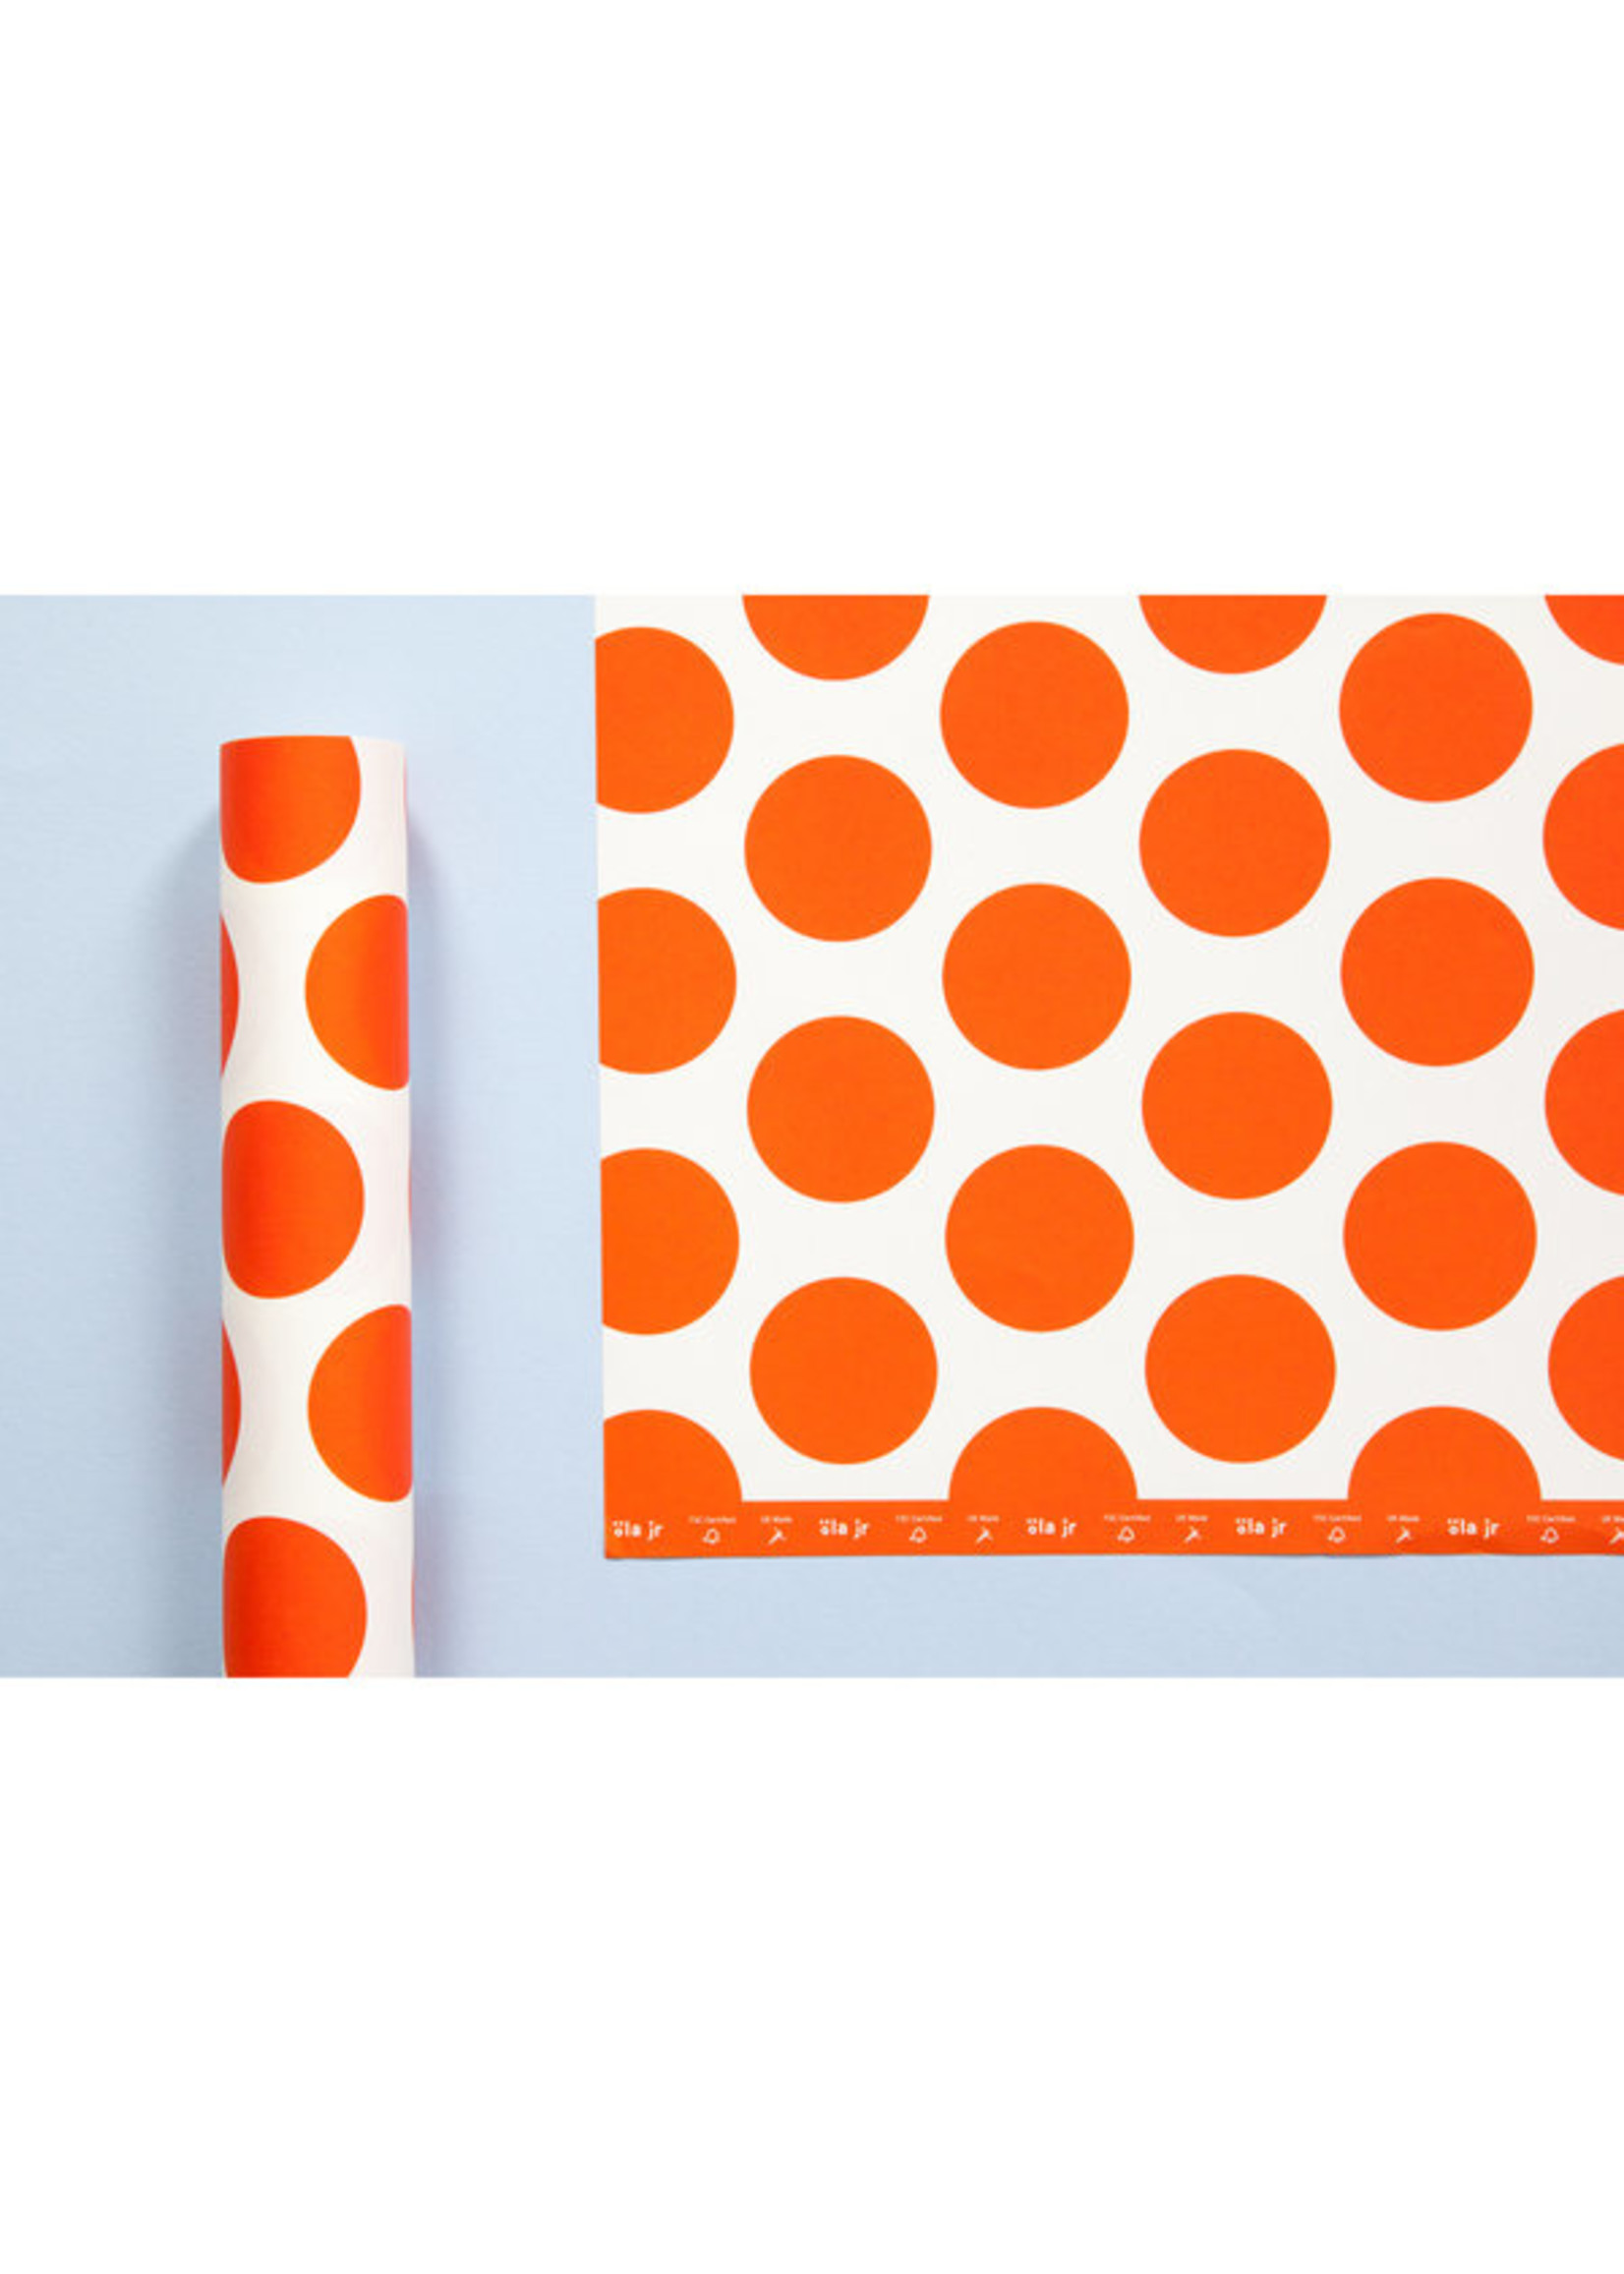 Ola Ola Patterned Papers: Circle Print in Red